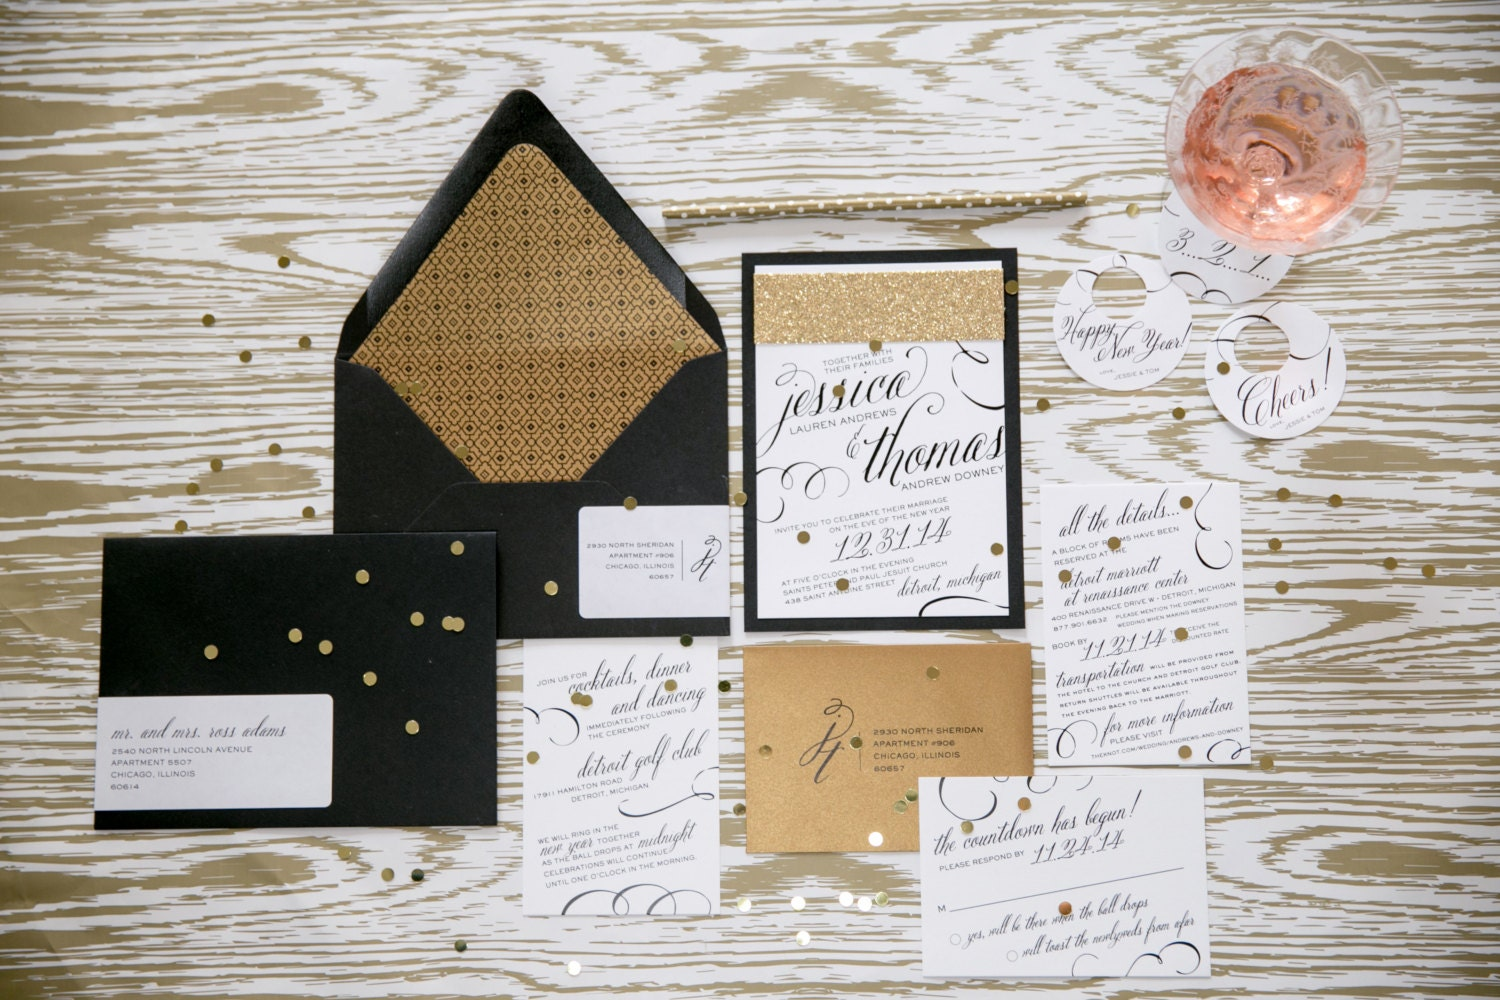 New Years Eve Wedding Invitation: Vintage Glam New Years Eve Wedding Invitations